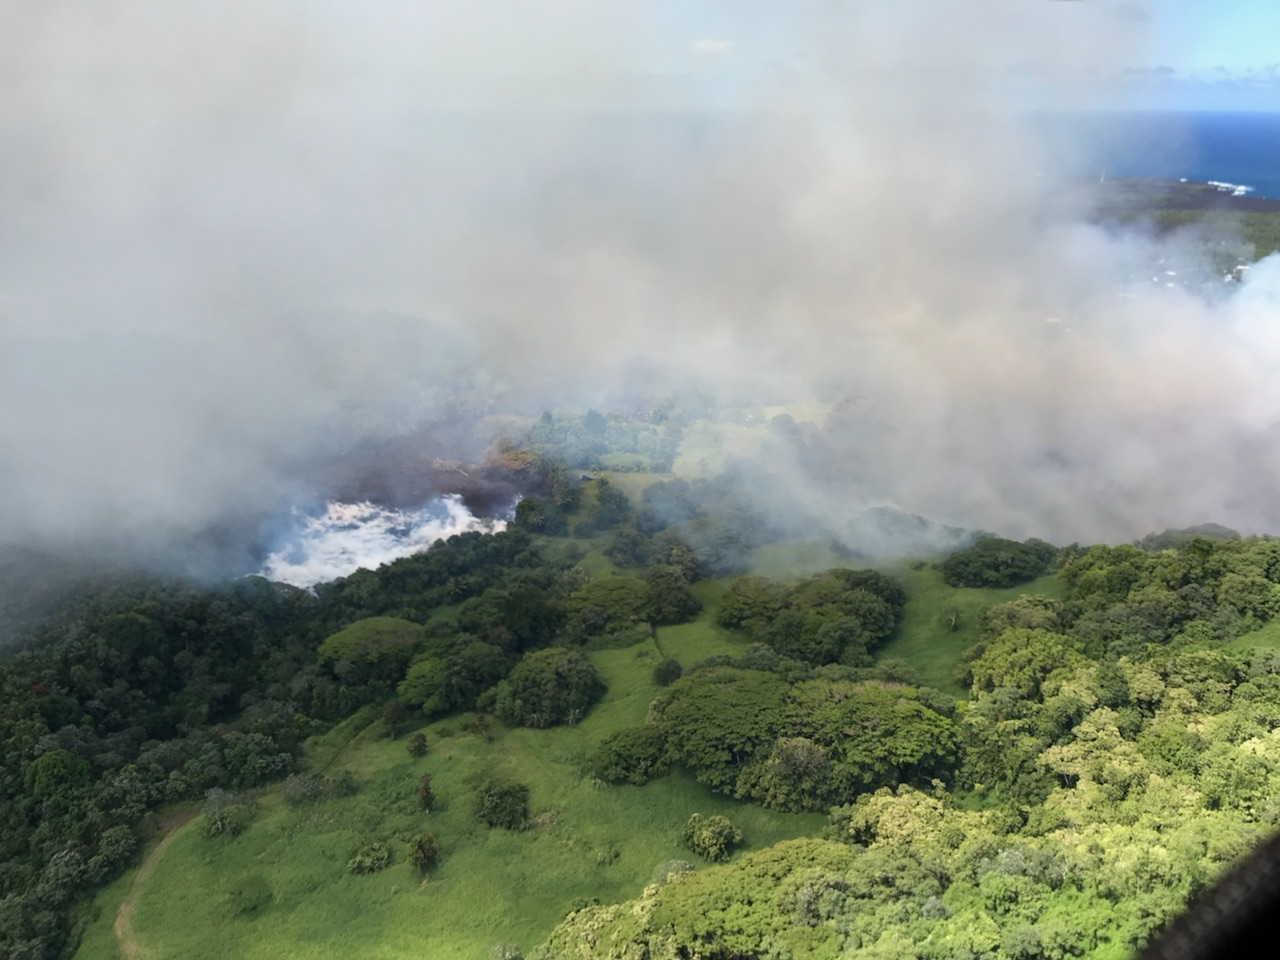 According to the USGS, lava from fissure 8 poured into Big Island's Green Lake and boiled the lake away in just 90 minutes.